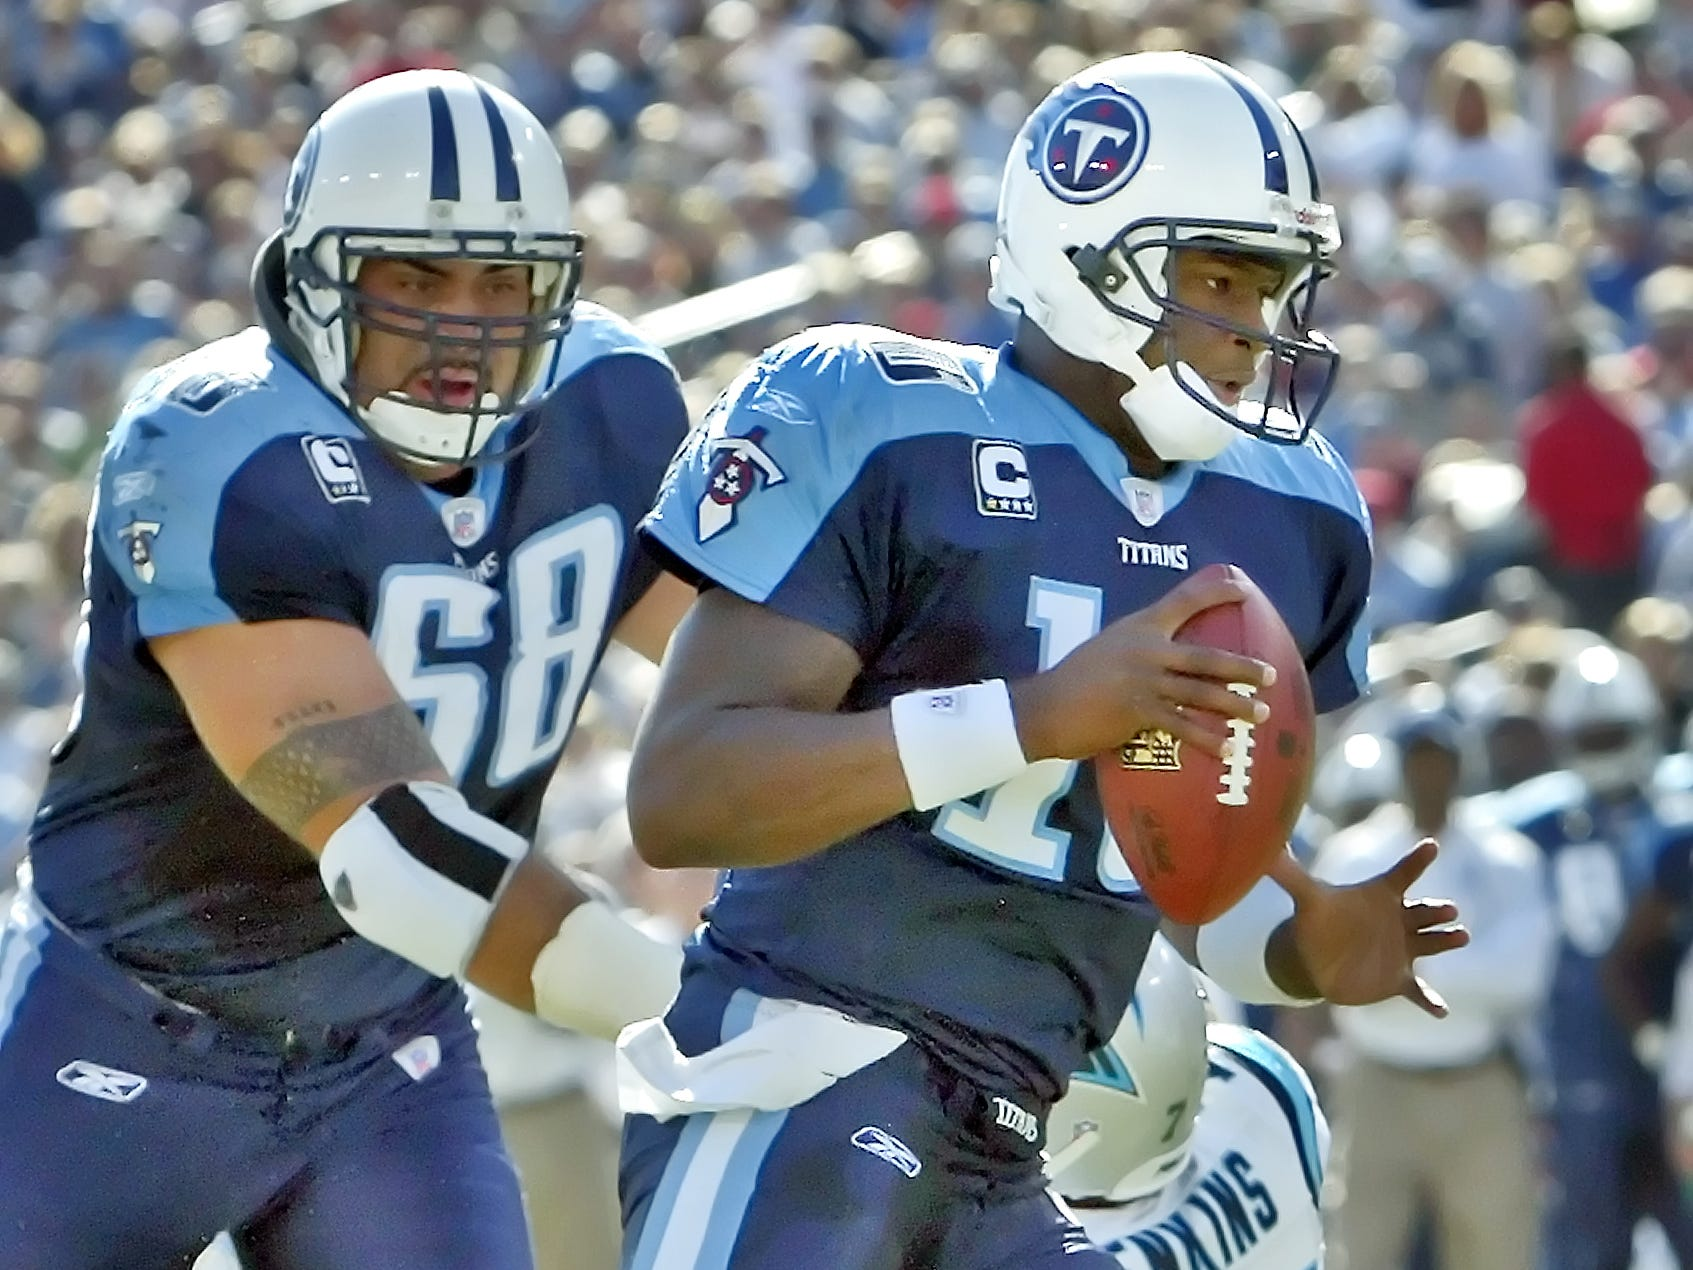 Tennessee Titans quarterback Vince Young (10) scores a touchdown as Kevin Mawae (68) looks on during the first quarter against Carolina Panthers at LP Field in Nashville, Tenn., Sunday, Nov. 4, 2007.